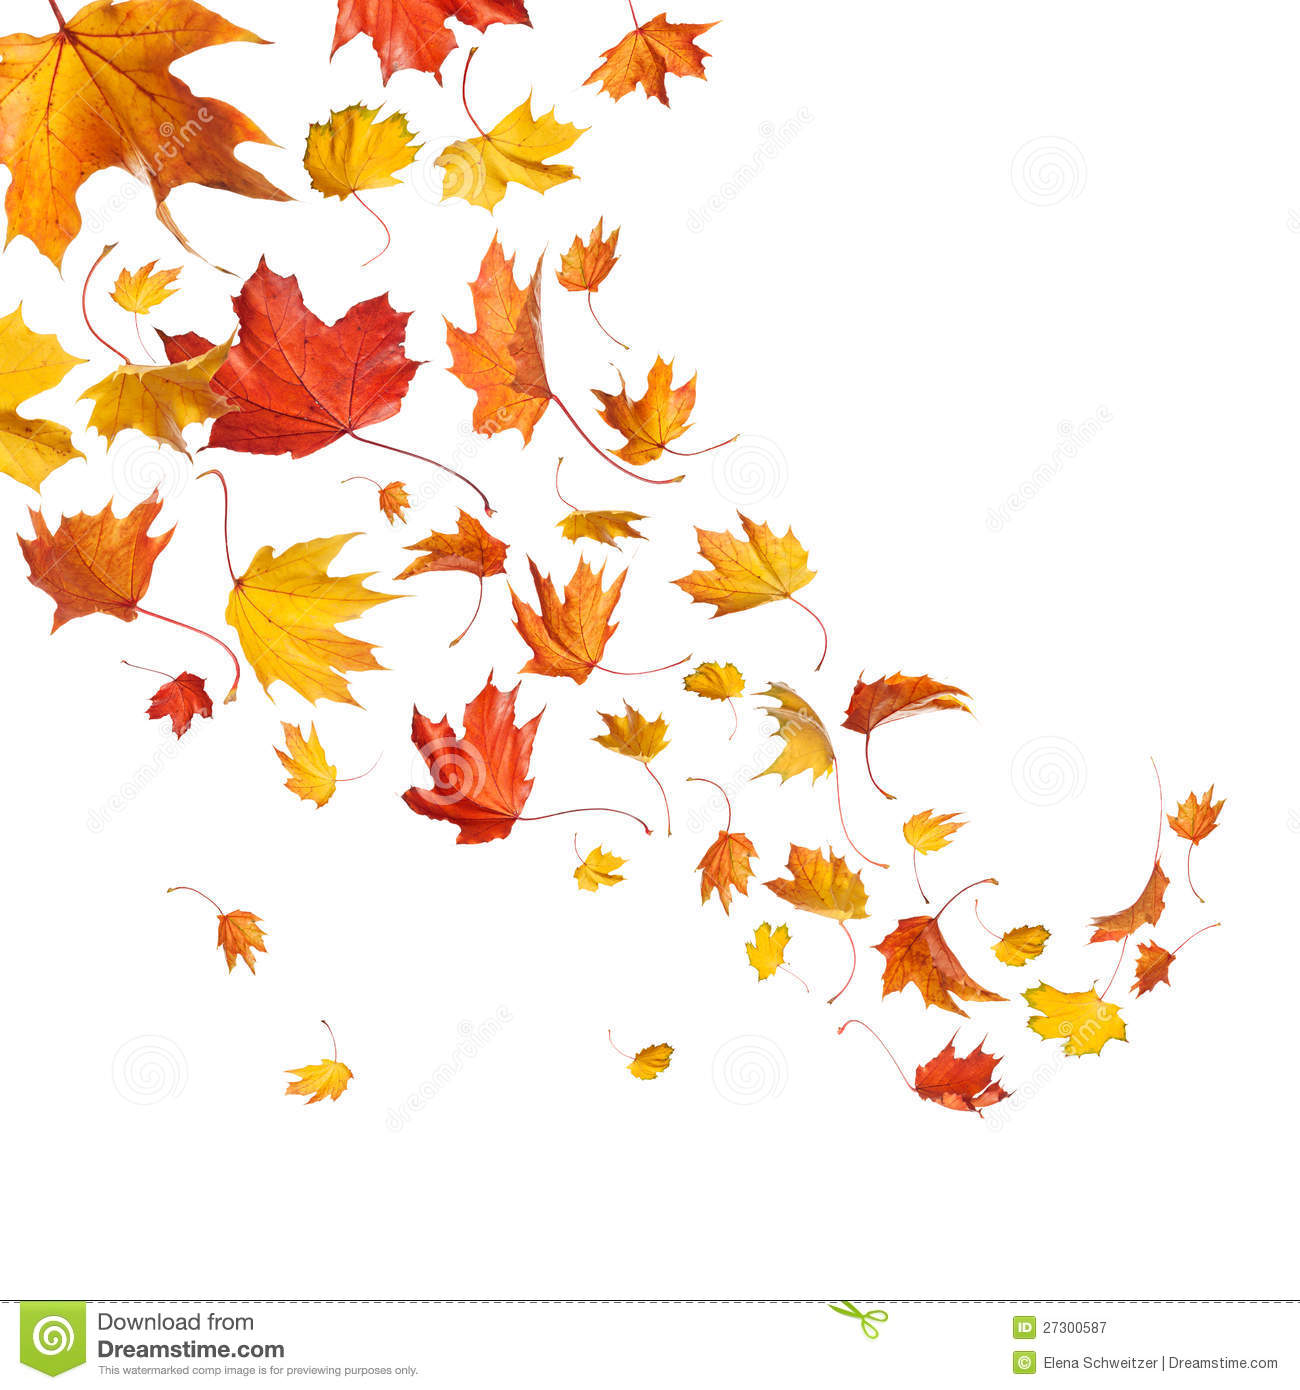 Autumn Falling Leaves Royalty Free Stock Photography   Image  27300587